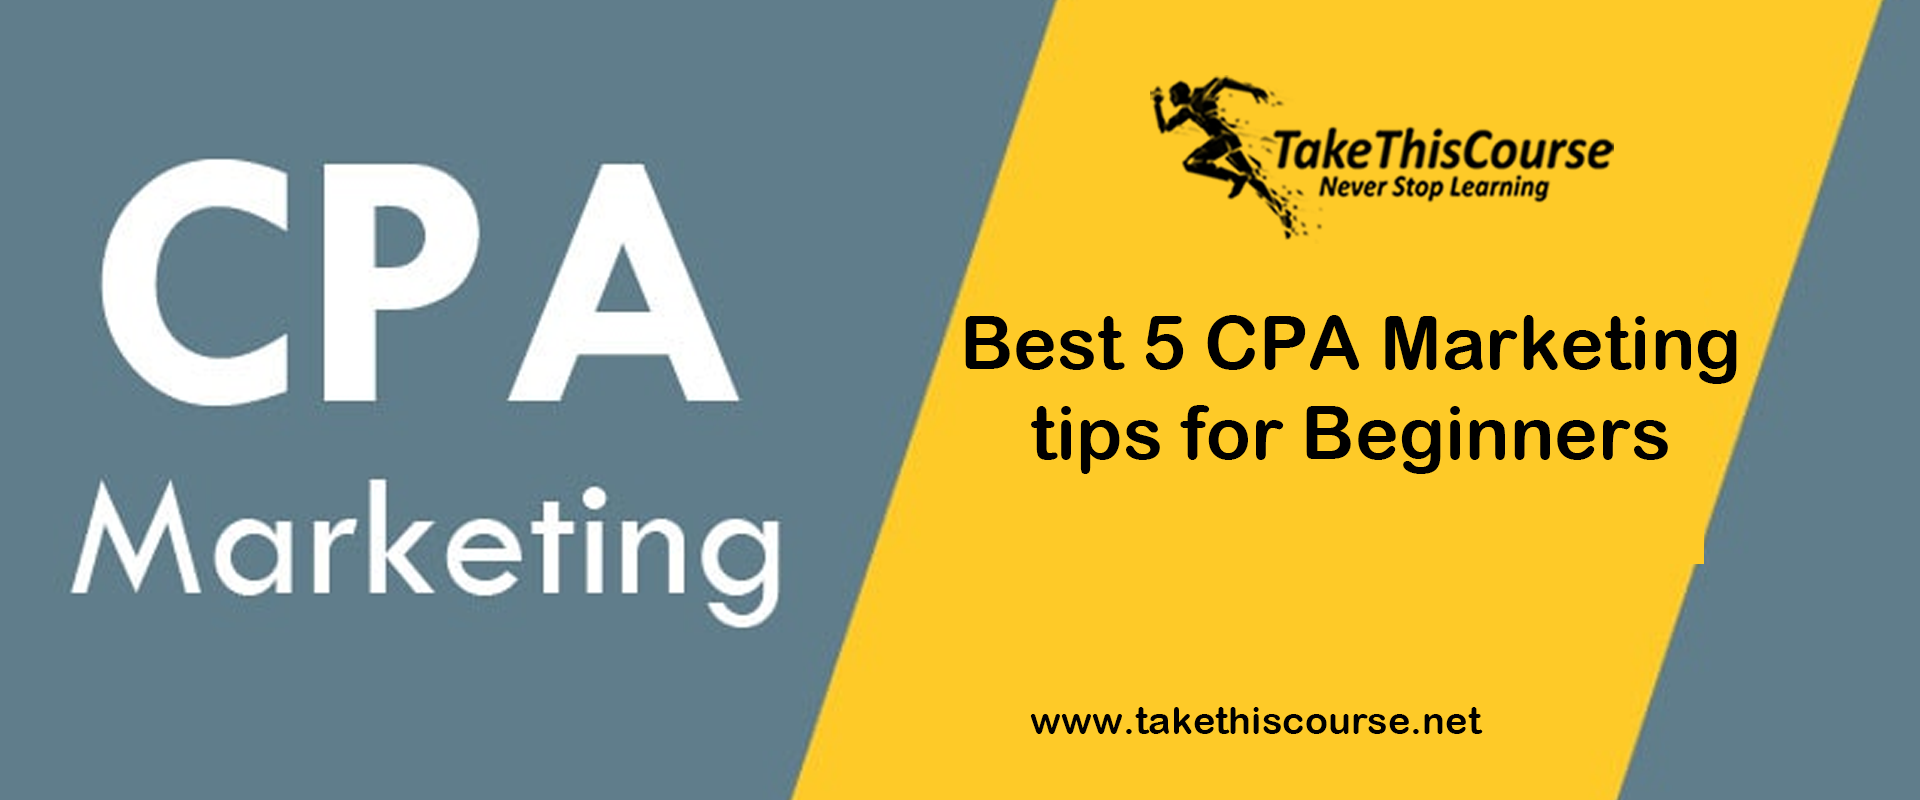 5 best CPA marketing tips for beginners